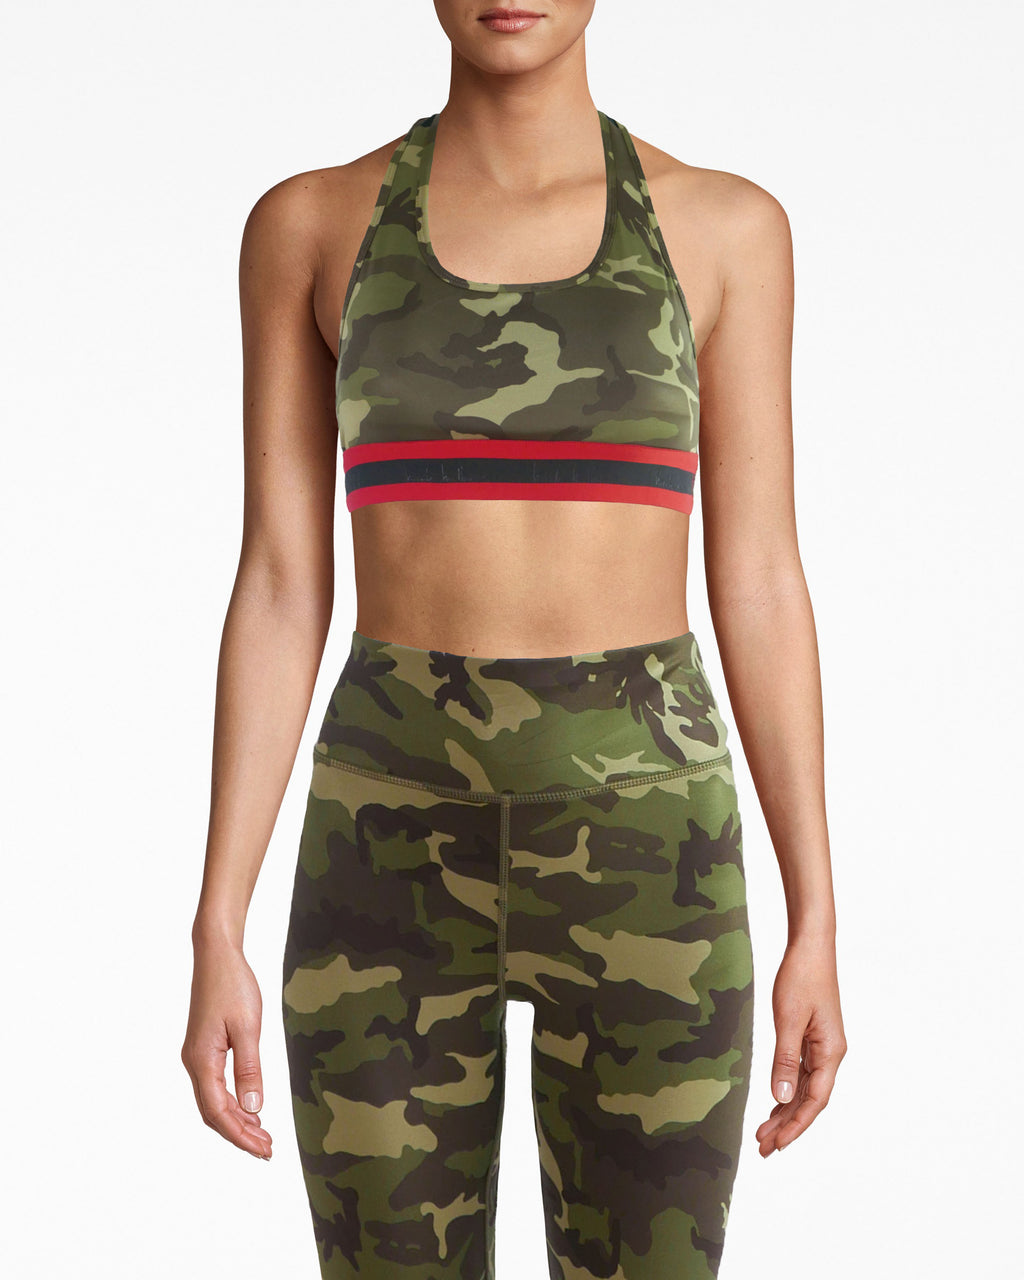 N8ZQ004 - Mesh Back Sports Bra - activewear - activewear tops - Work out duty. The racerback on this padded sports bra features mesh, with camouflage lining. The Nicole Miller logo circles around the black and red under band. The stretchy fabric helps you feel comfortable and protected.